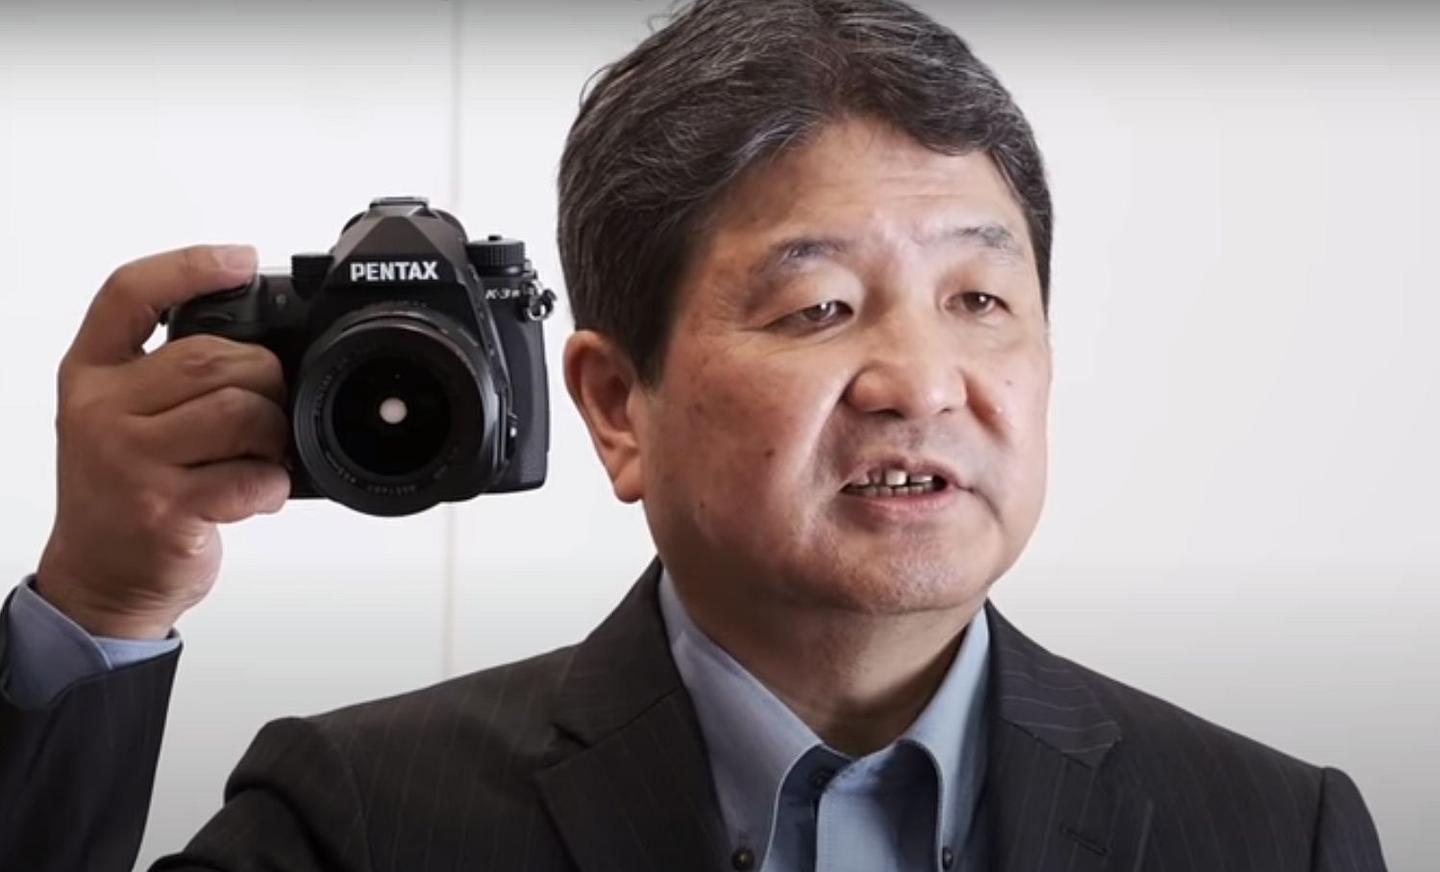 Ricoh Imaging's president Shinobu Takahashi has revealed that the company's upcoming APS-C DSLR flagship is named the Pentax K-3 Mark III